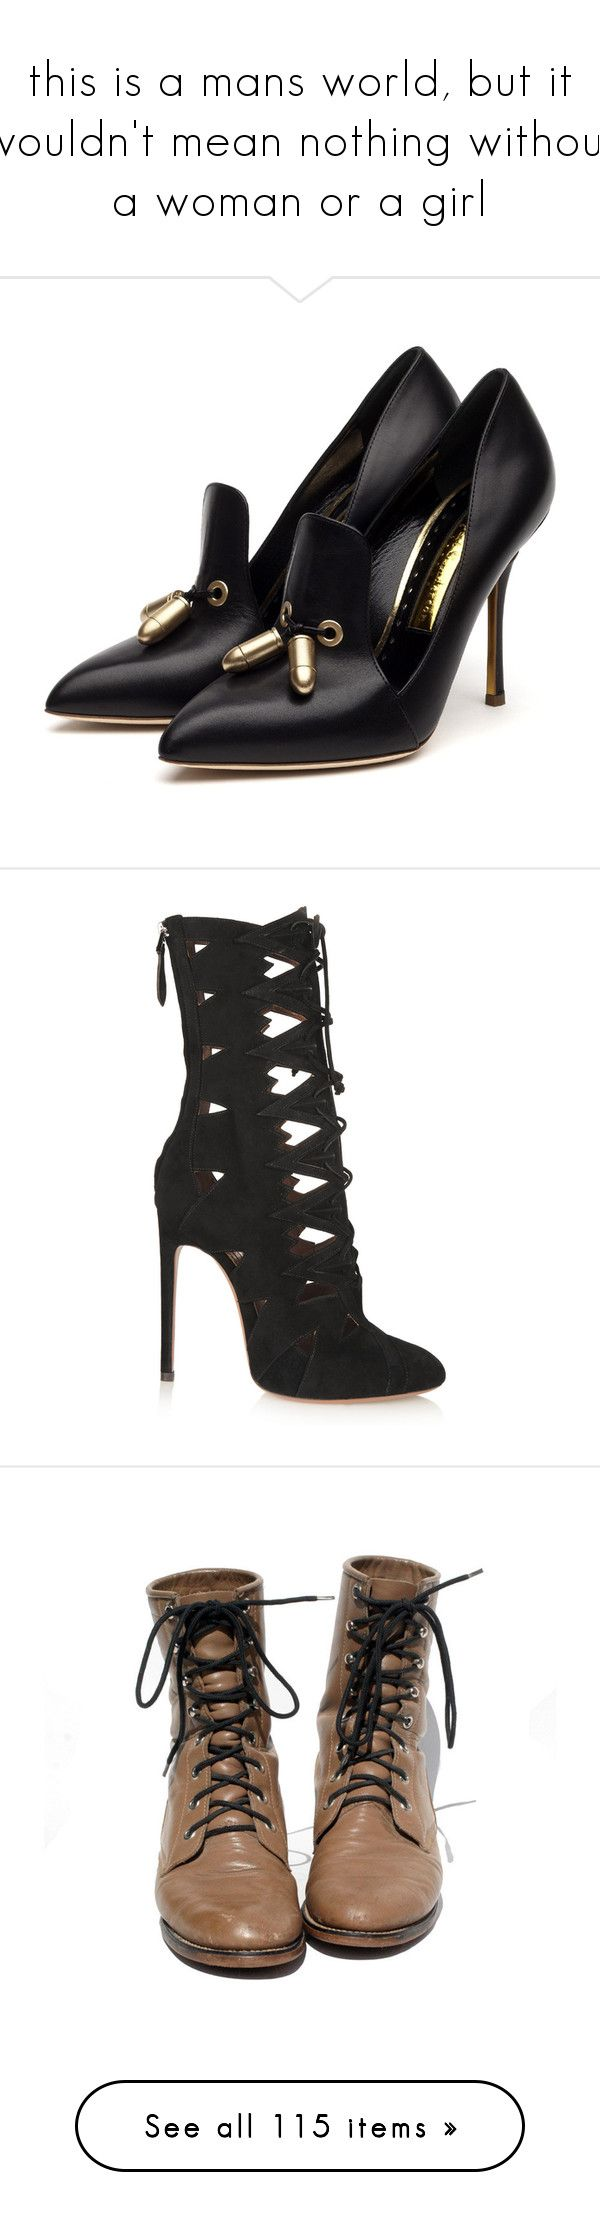 """""""this is a mans world, but it wouldn't mean nothing without a woman or a girl"""" by katiede-lannoy ❤ liked on Polyvore featuring shoes, pumps, heels, zapatos, sapatos, black shoes, high heel shoes, rupert sanderson, high heeled footwear and black high heel pumps"""